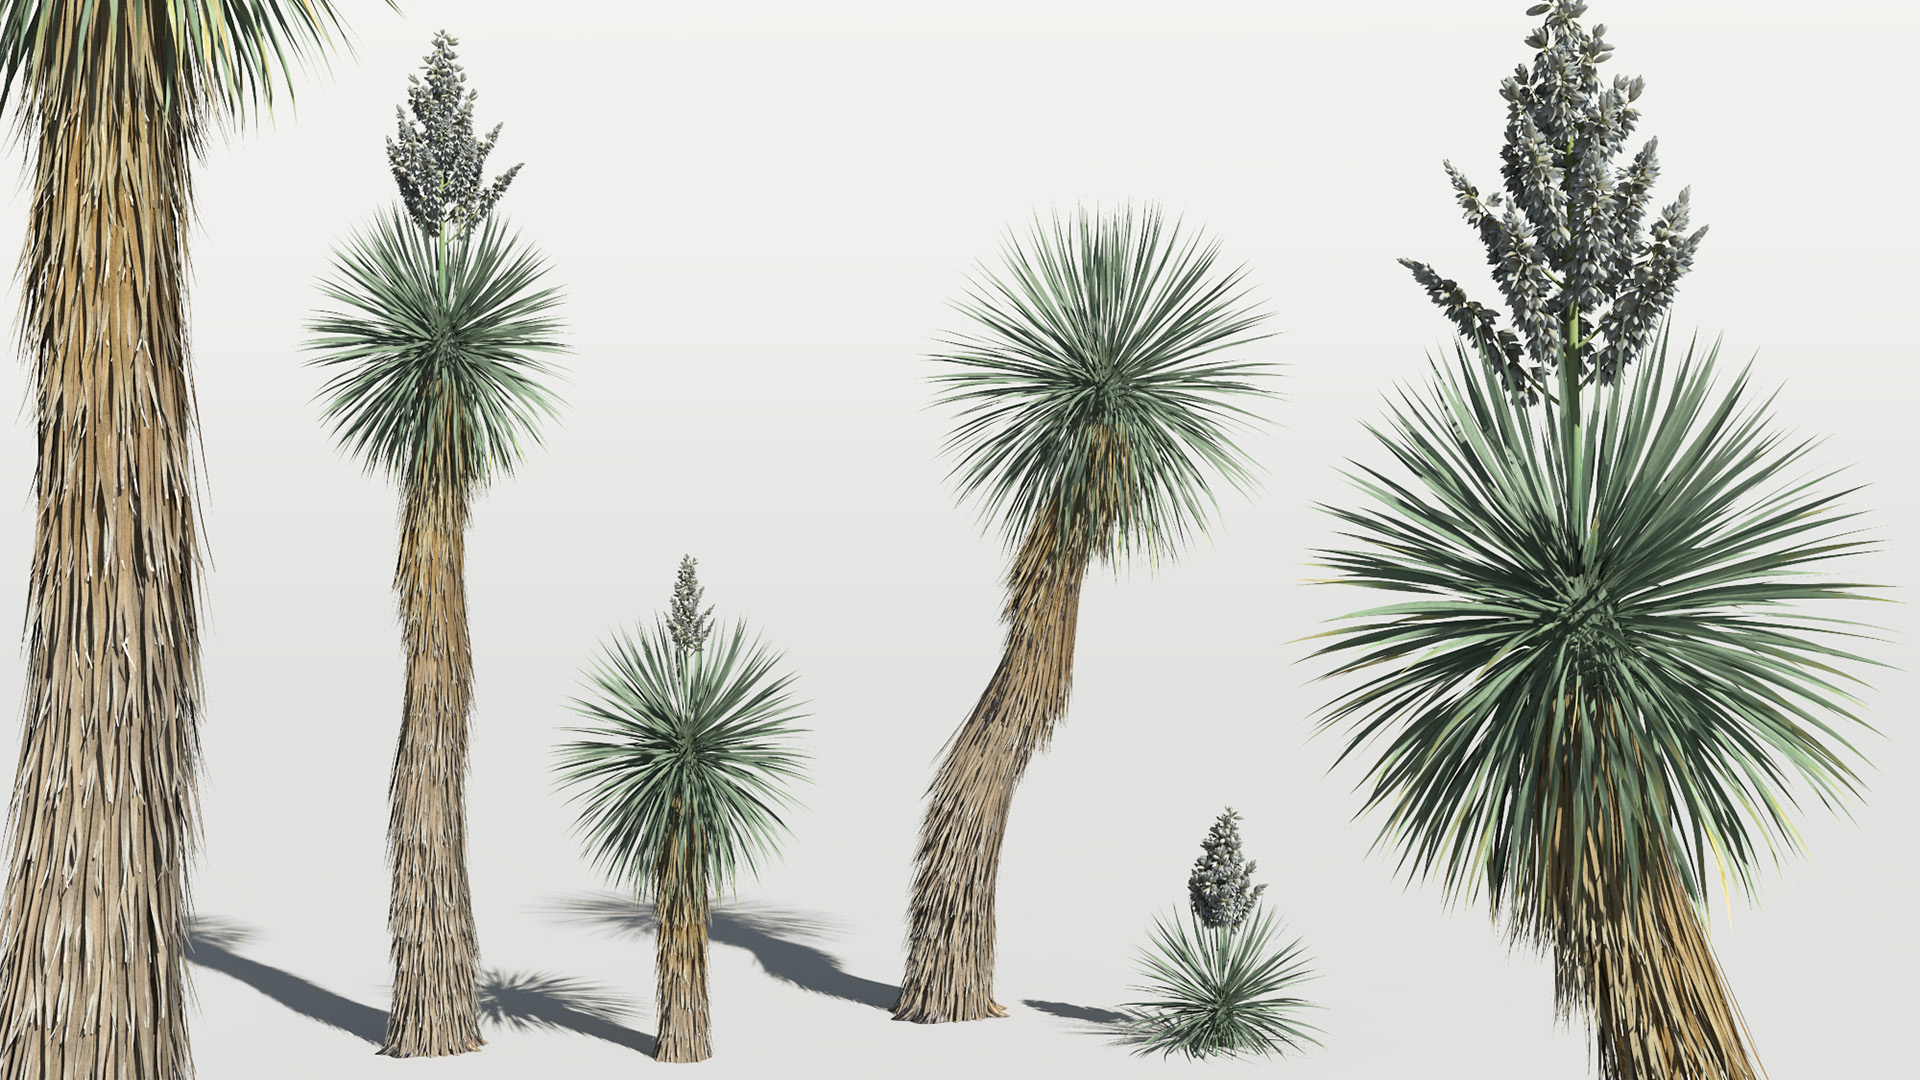 3D model of the Beaked yucca Yucca rostrata different presets